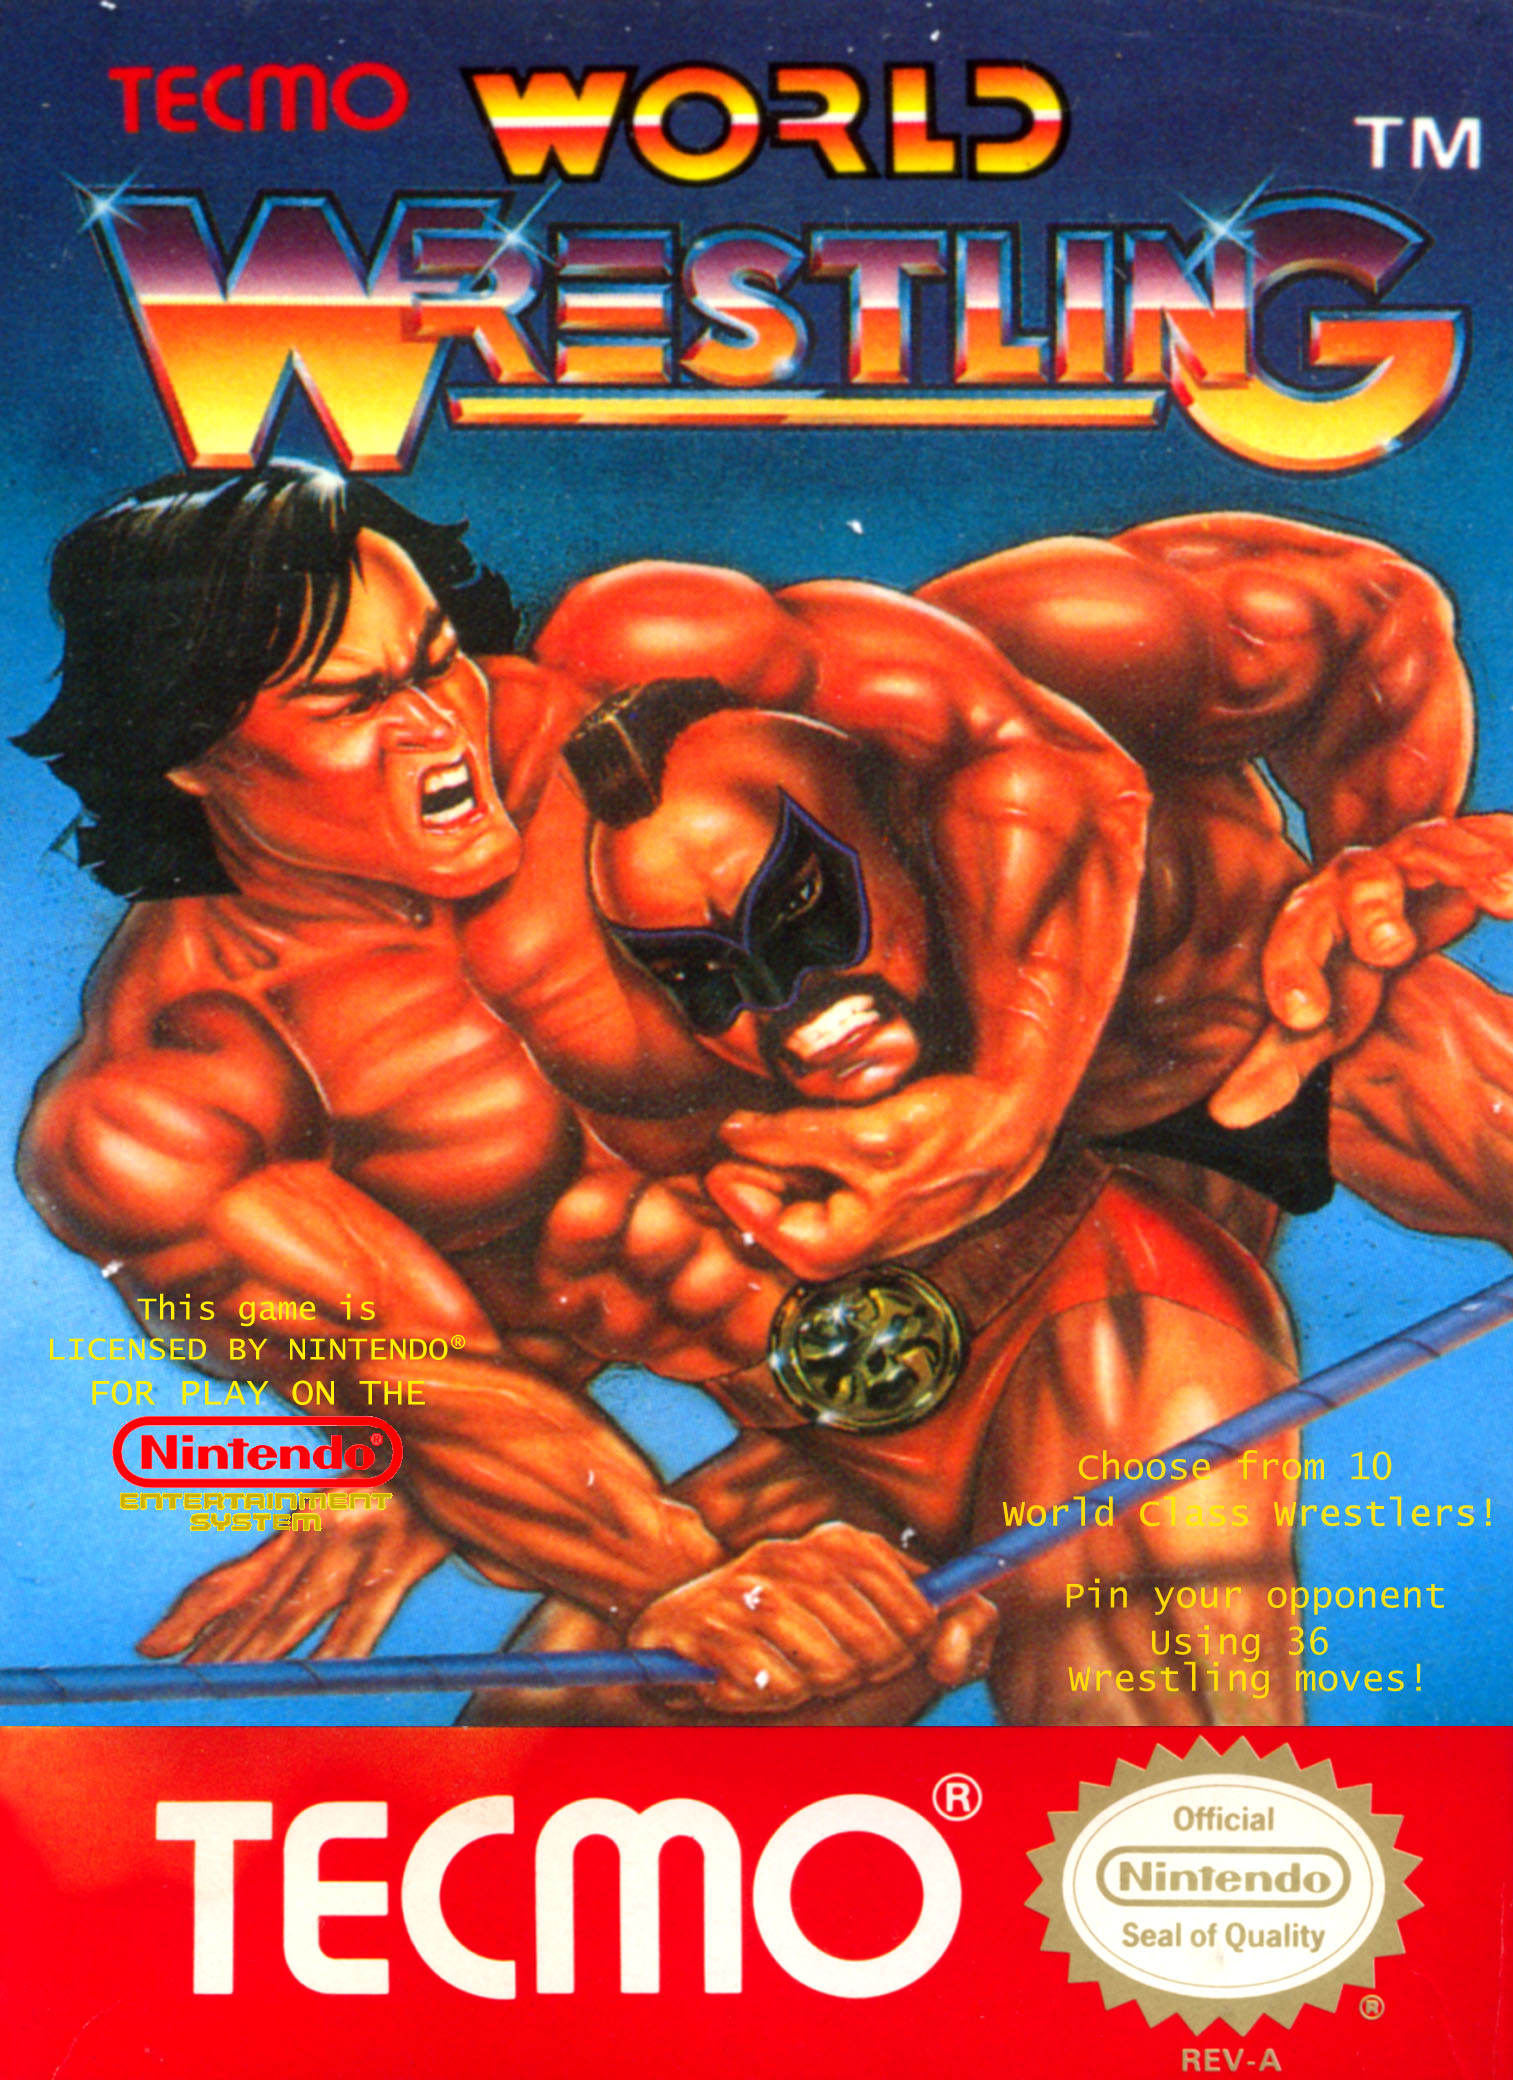 Le Topic des jeux de Catch (Pro Wrestling) Tecmo_World_Wrestling_Coverart-1